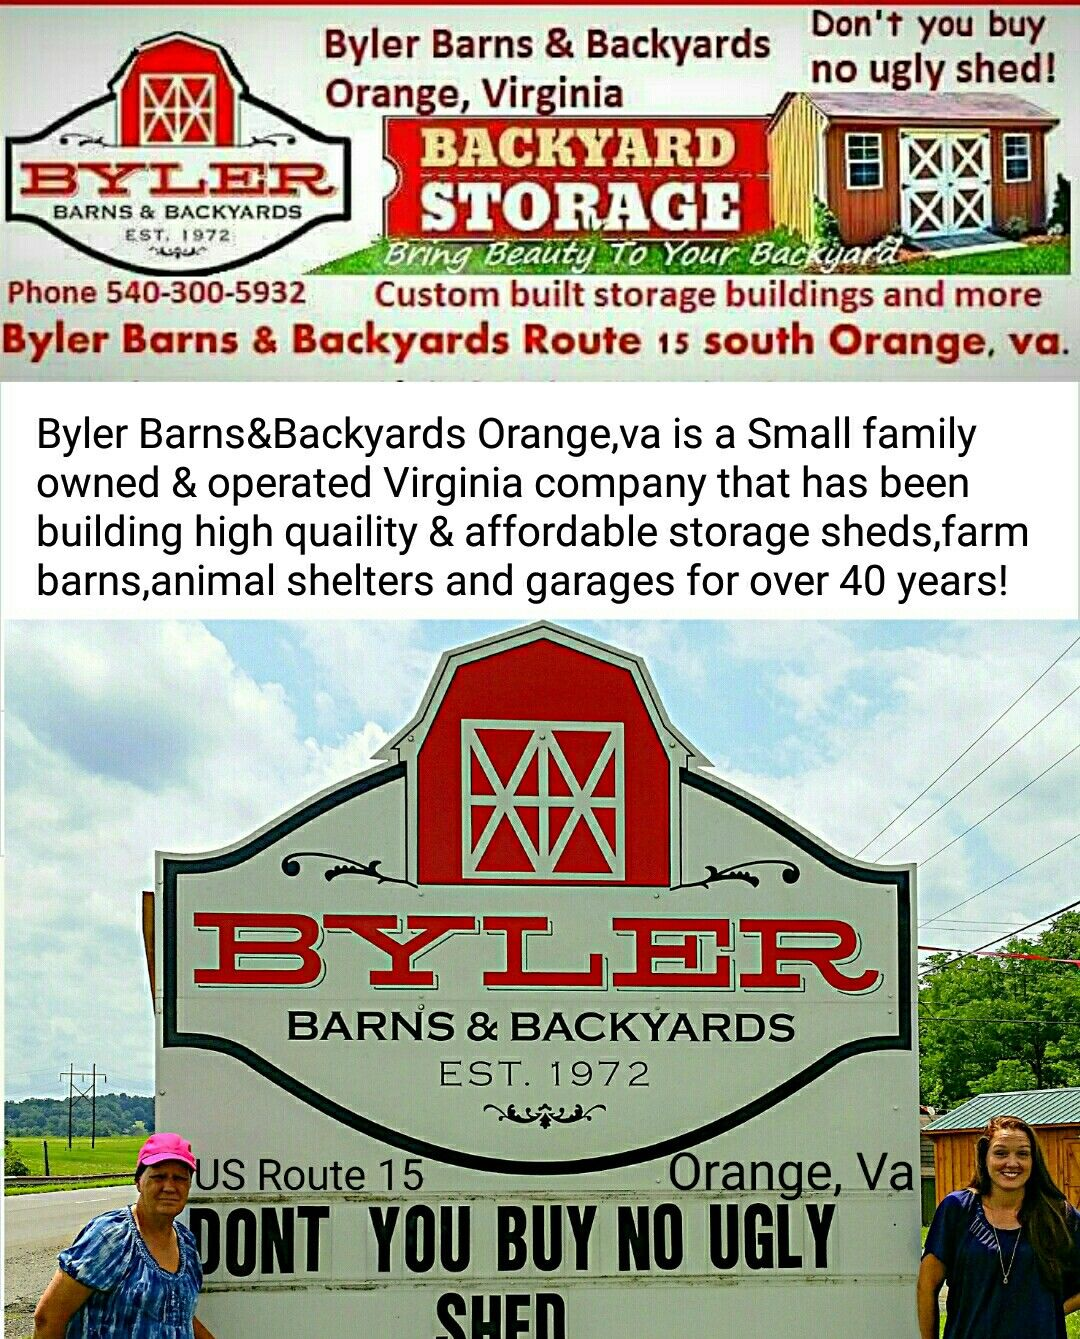 Byler Barns And Backyards In Orange, Va.